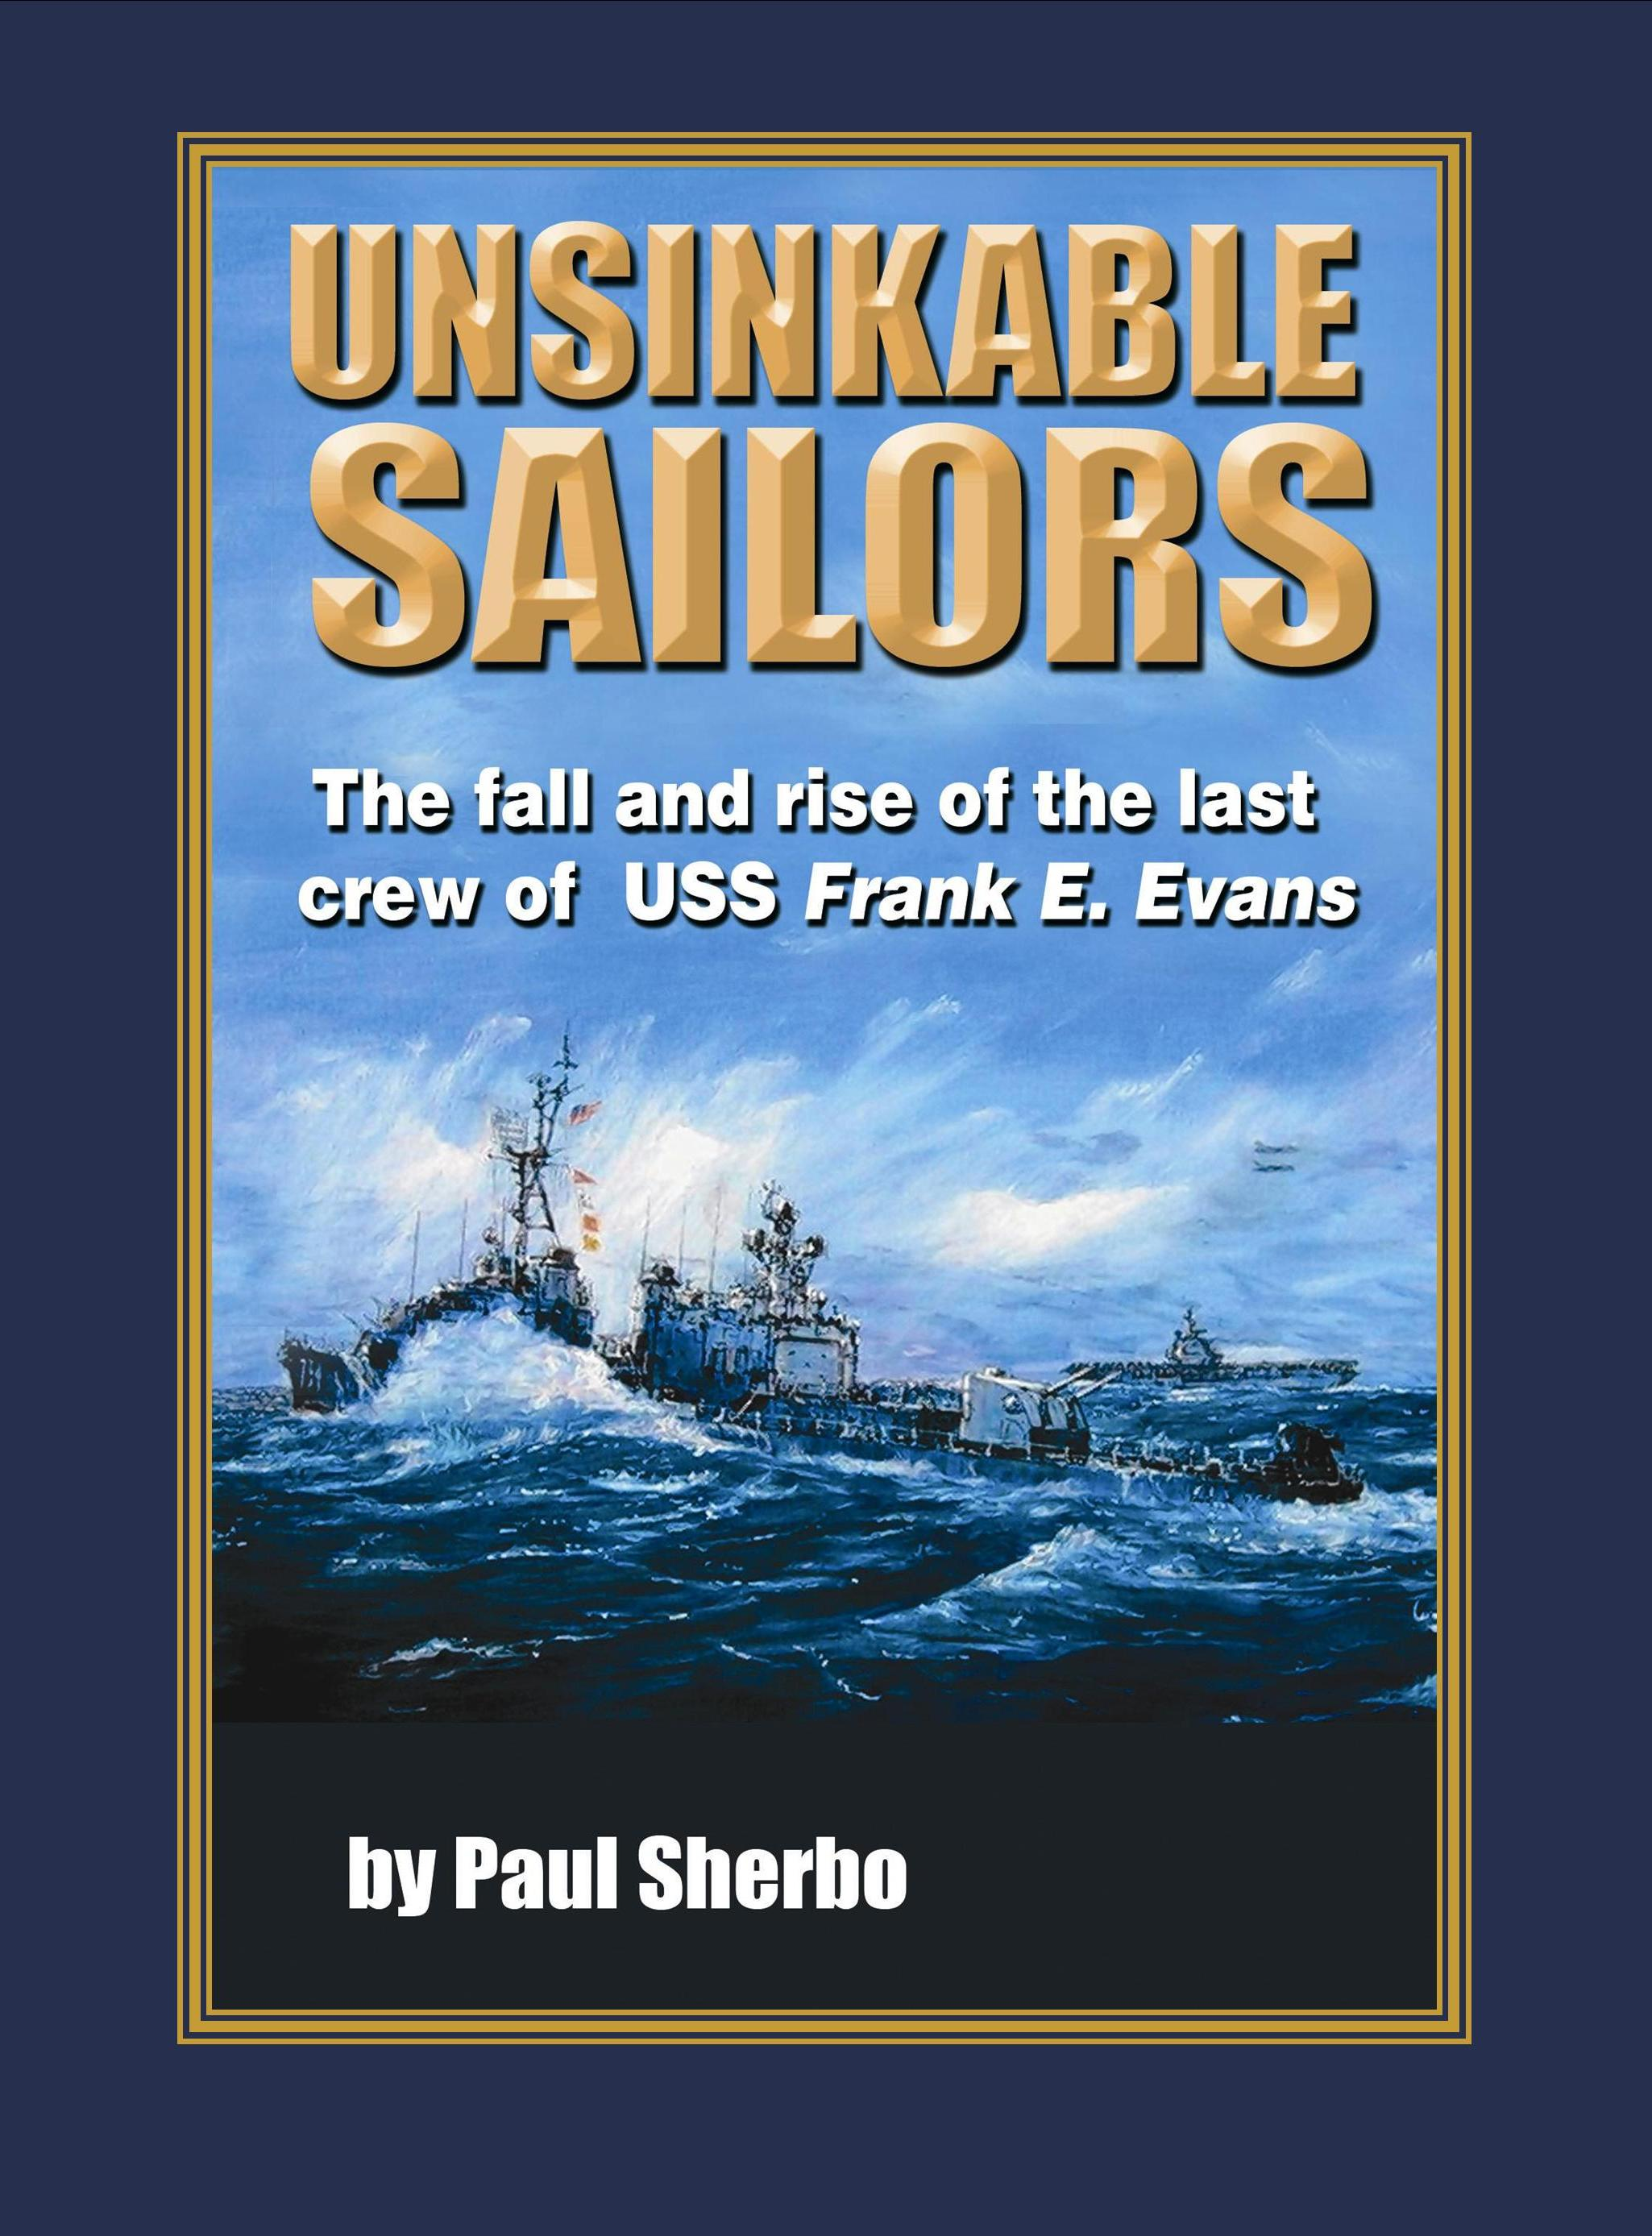 Unsinkable Sailors by Paul Sherbo Hardcover Edition